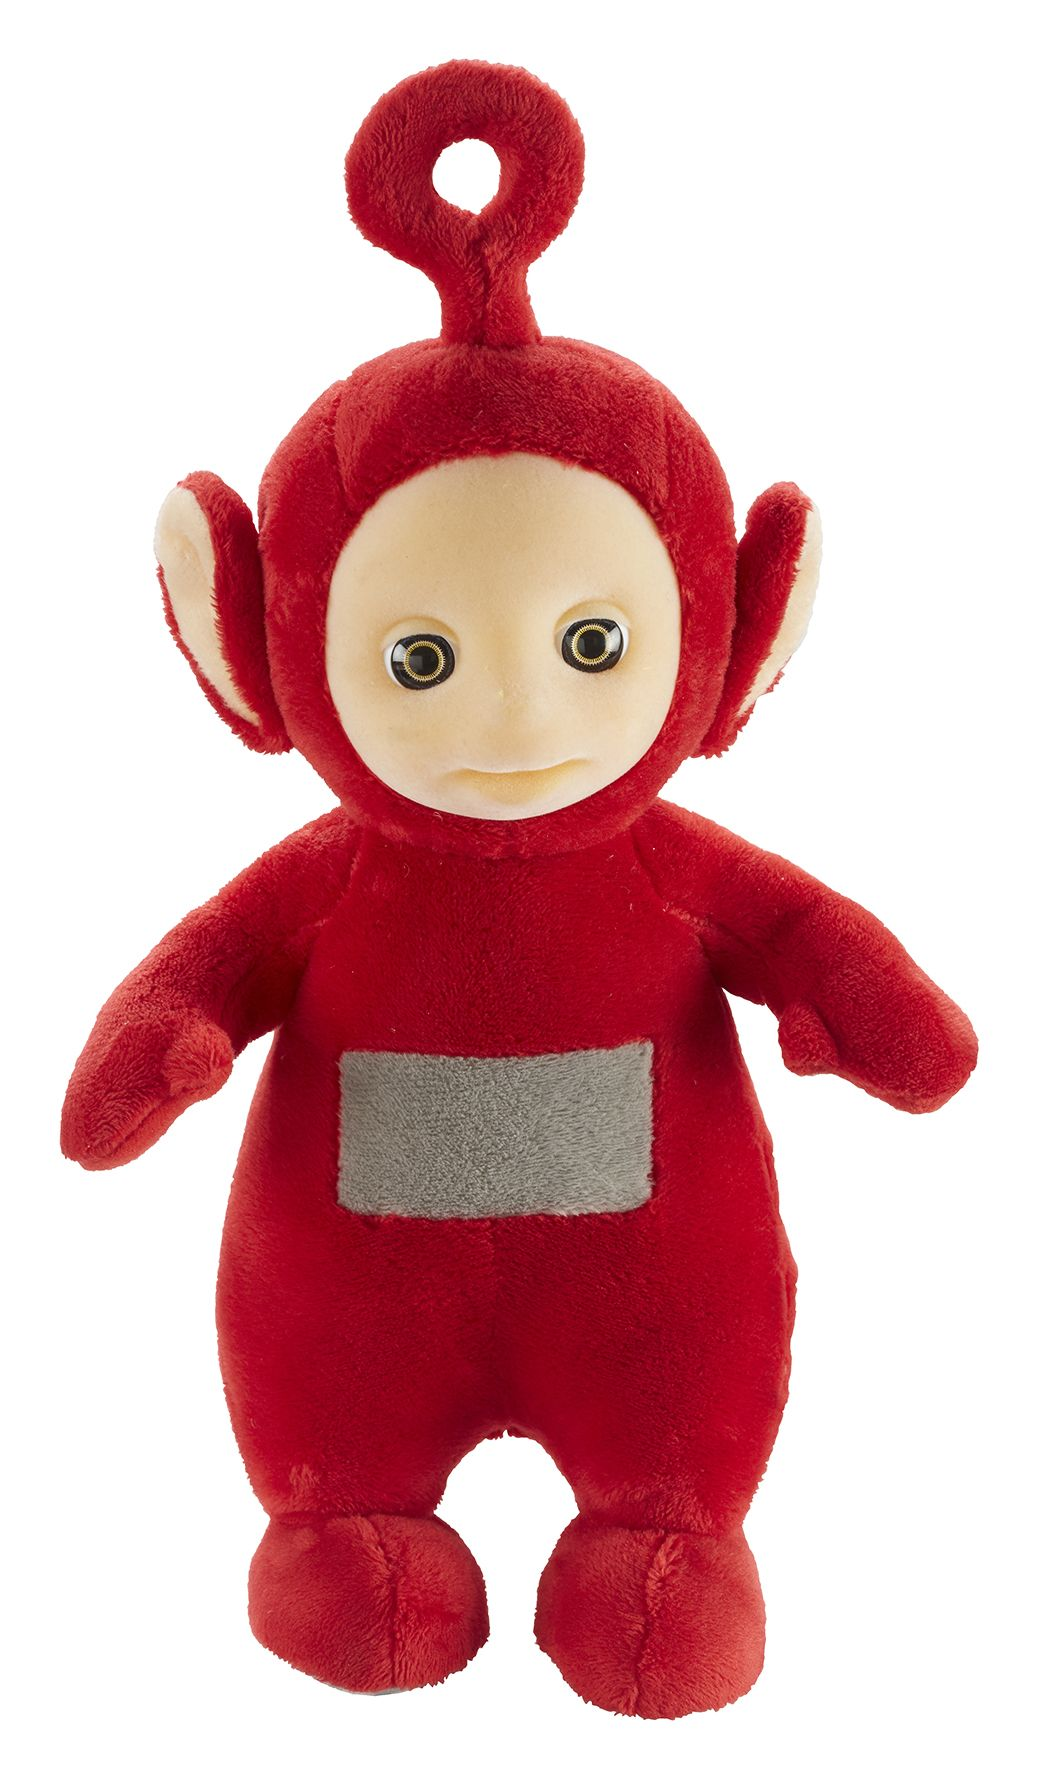 Teletubby Talking Po Soft Toy